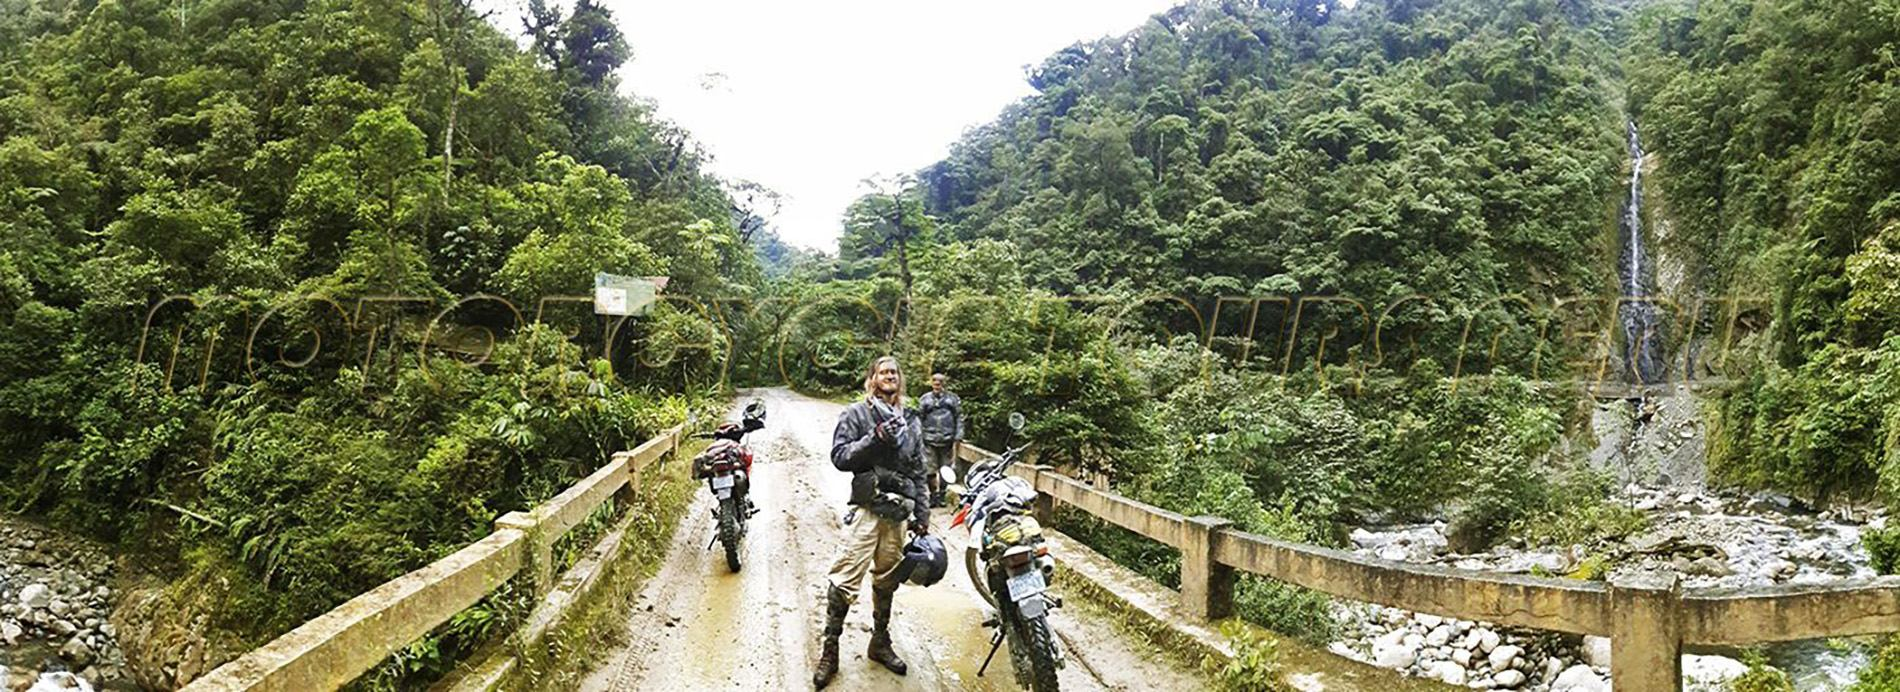 Moto Tours in Peruvian Jungle